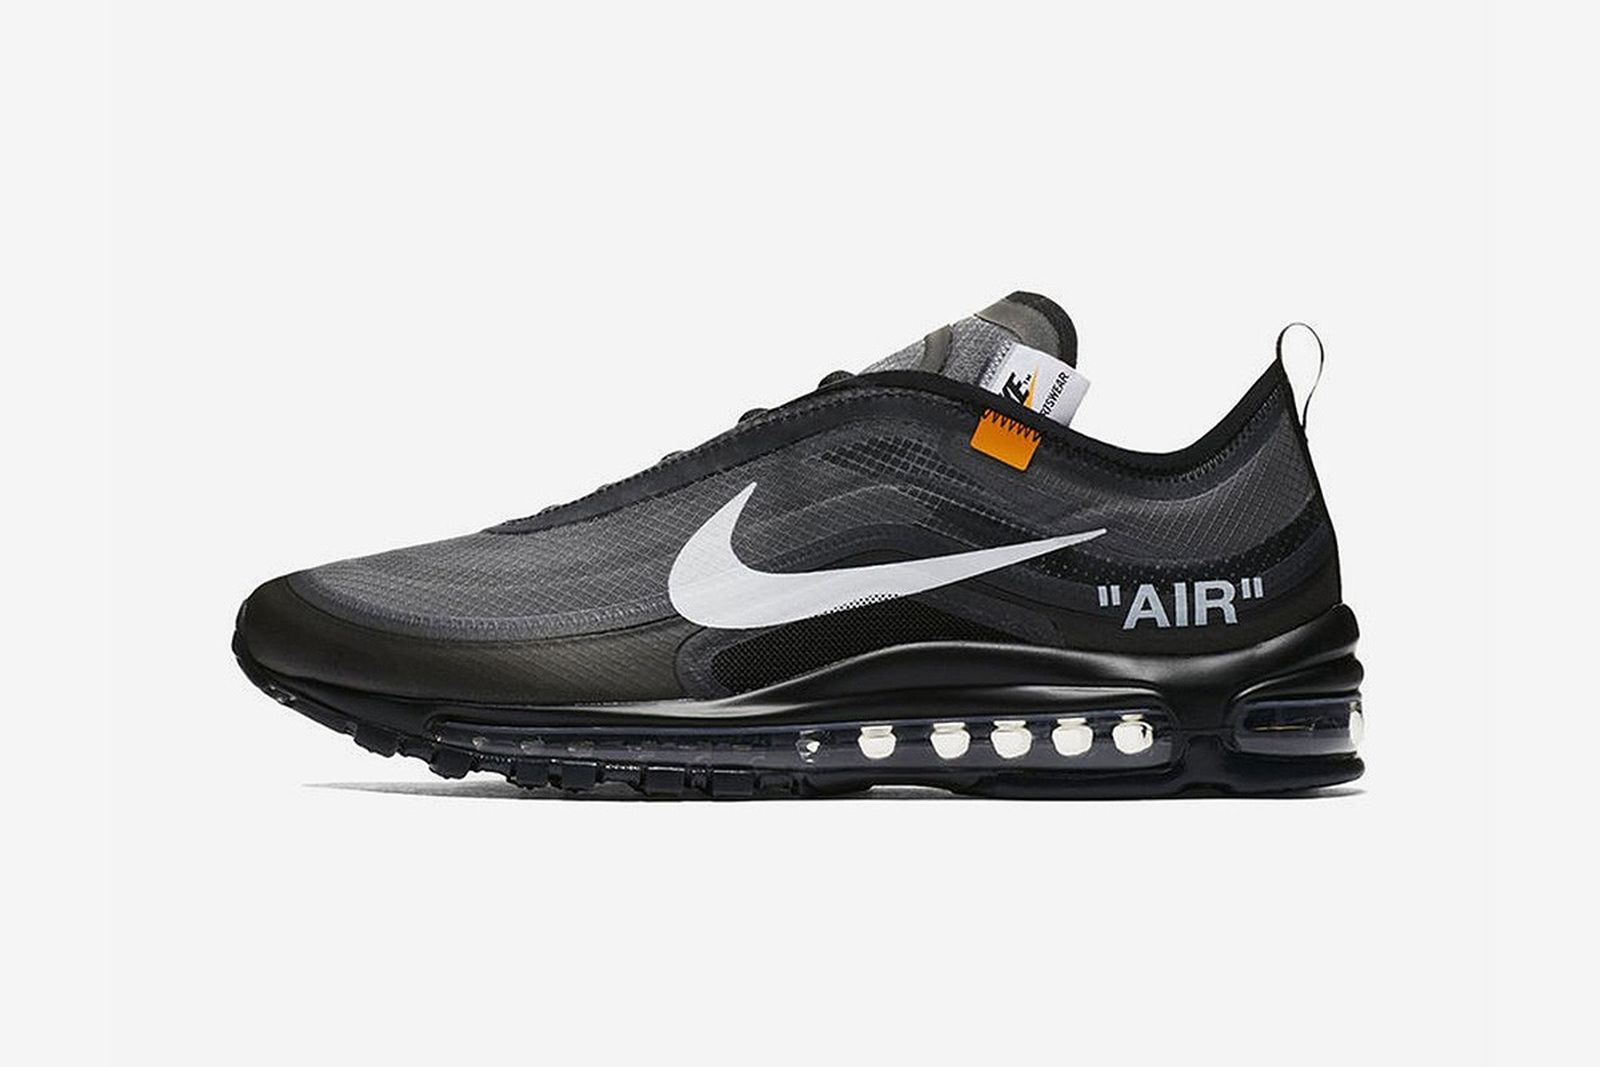 off-white-nike-air-max-97-black-release-date-price-03